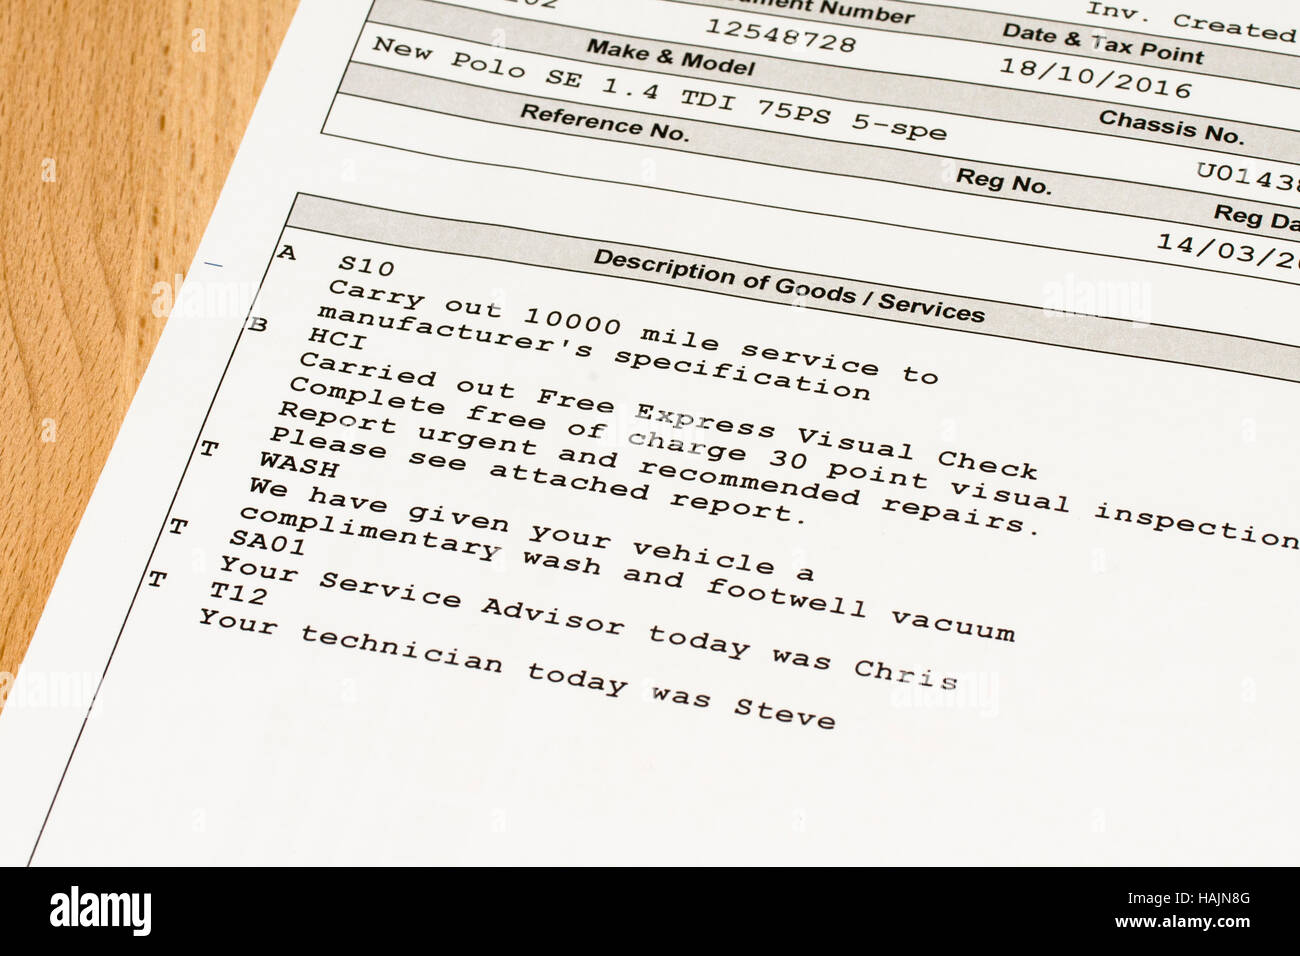 VW Polo car Service statement Stock Photo: 127030976 - Alamy